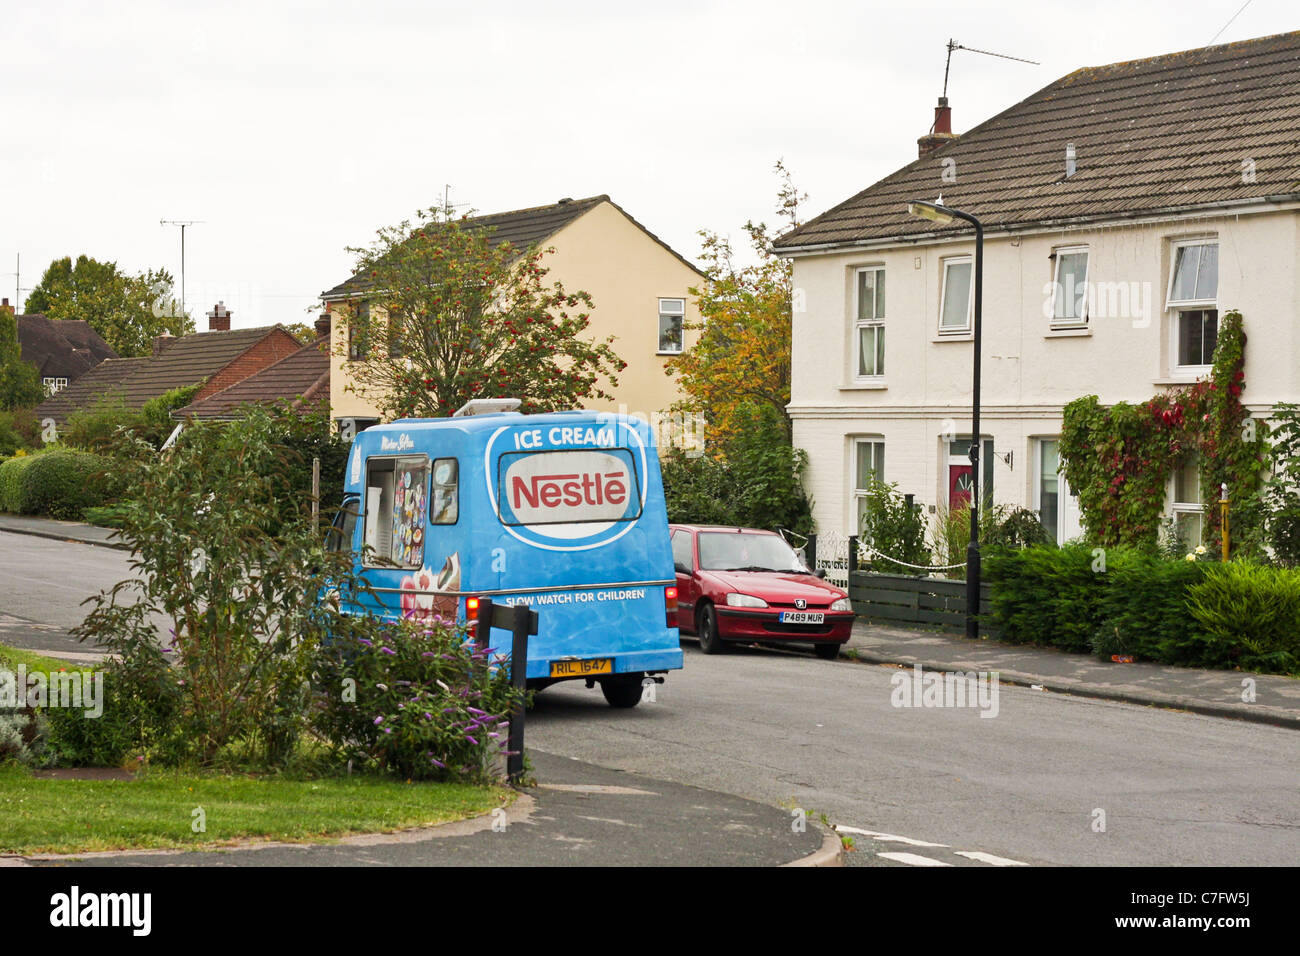 Ice cream van parked on a housing estate in Bury St Edmunds, Suffolk - Stock Image